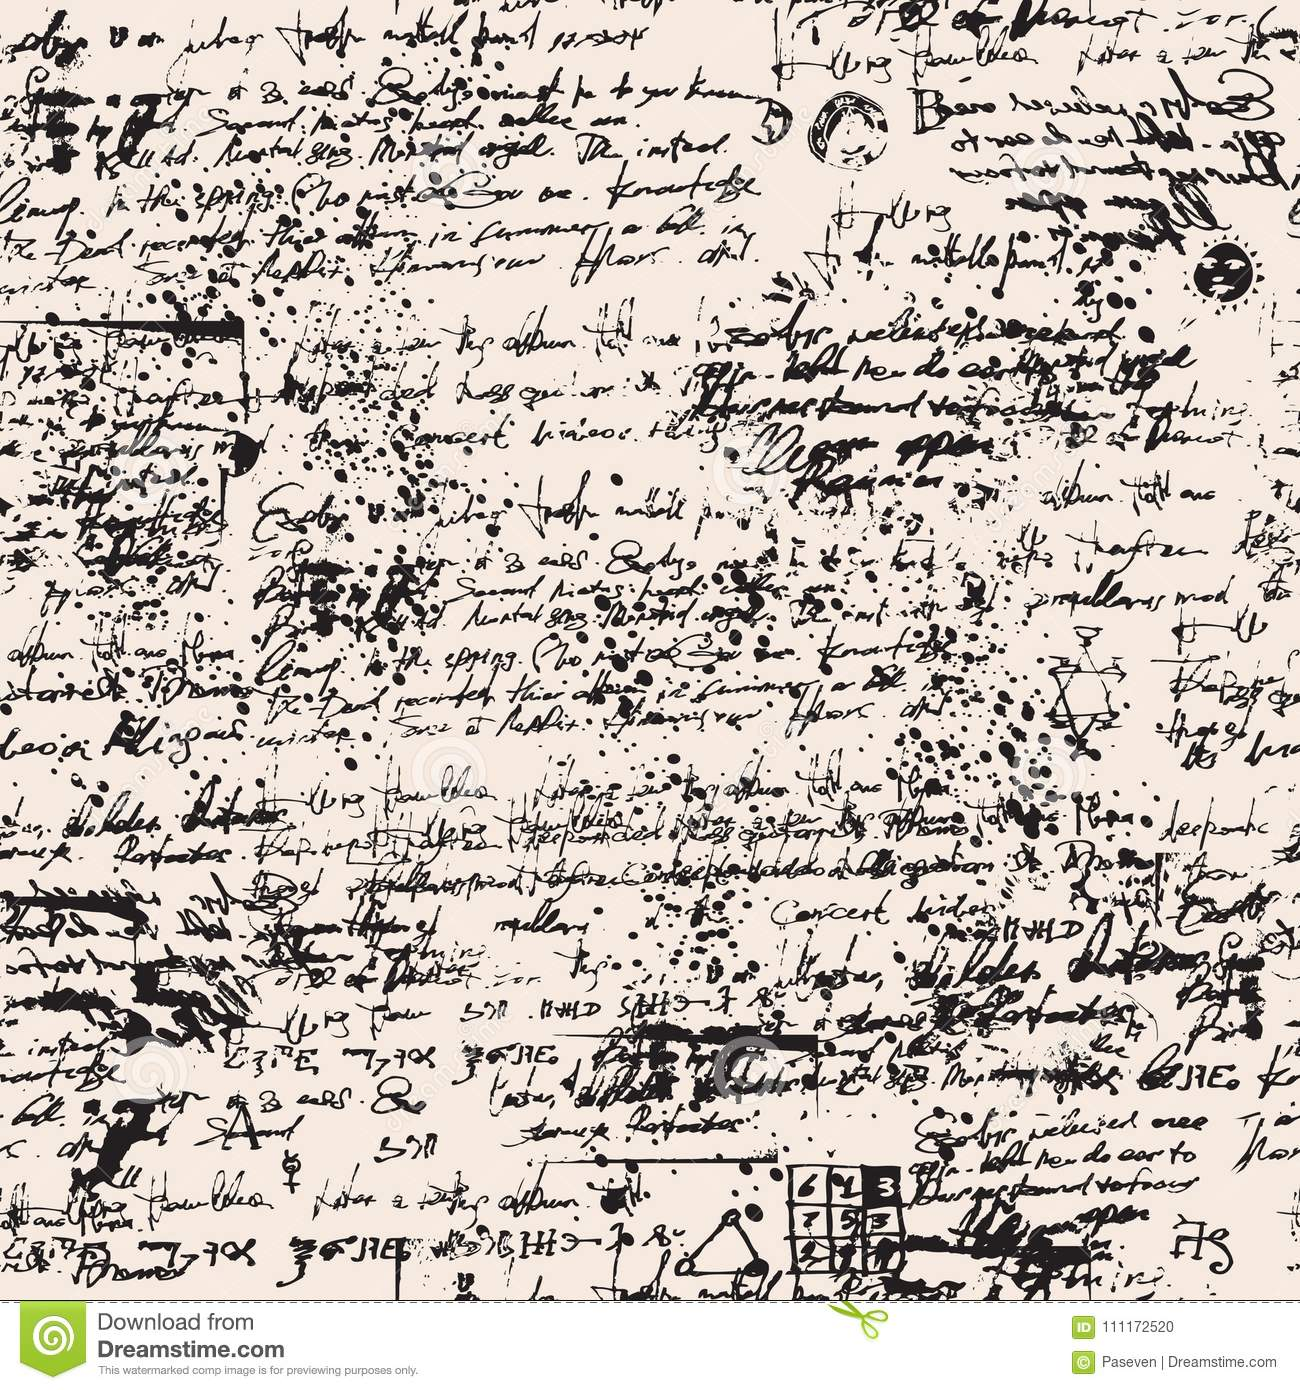 Medieval Papyrus With Blots And Scribbles Stock Vector